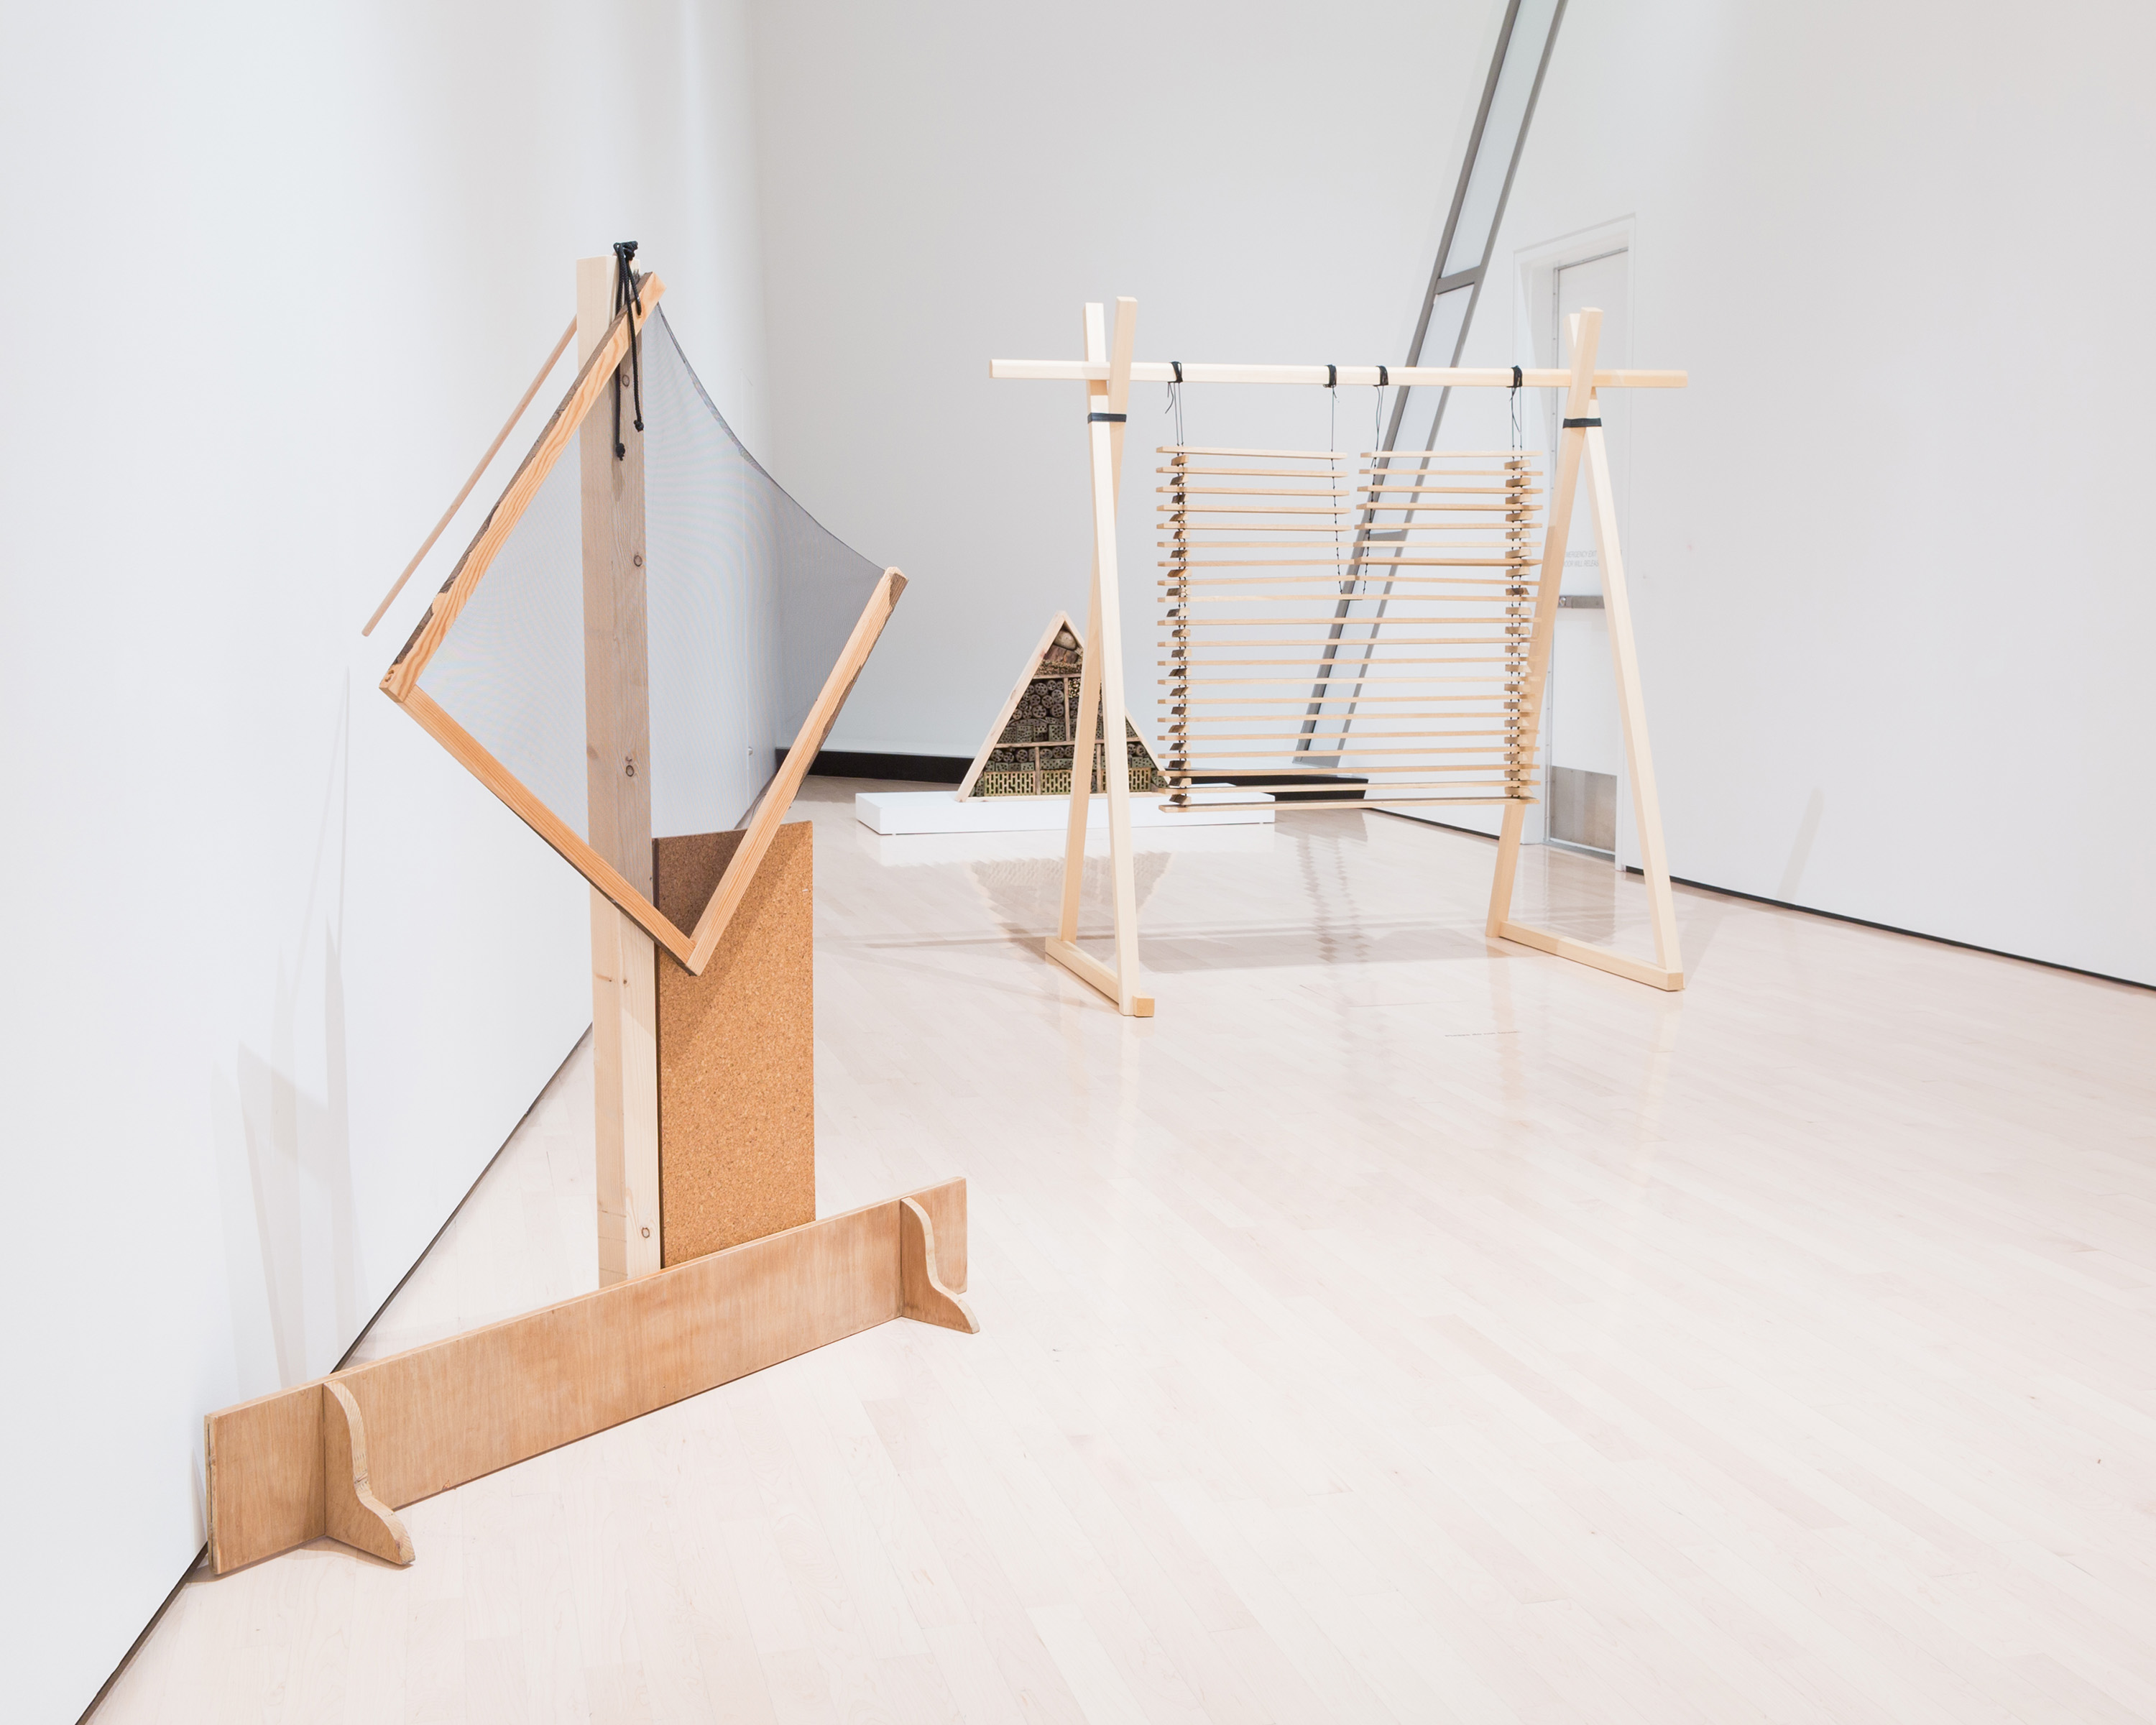 <i>Material Effects</i>, installation view at the Eli and Edythe Broad Art Museum at Michigan State University, 2015. Photo: Eat Pomegranate Photography